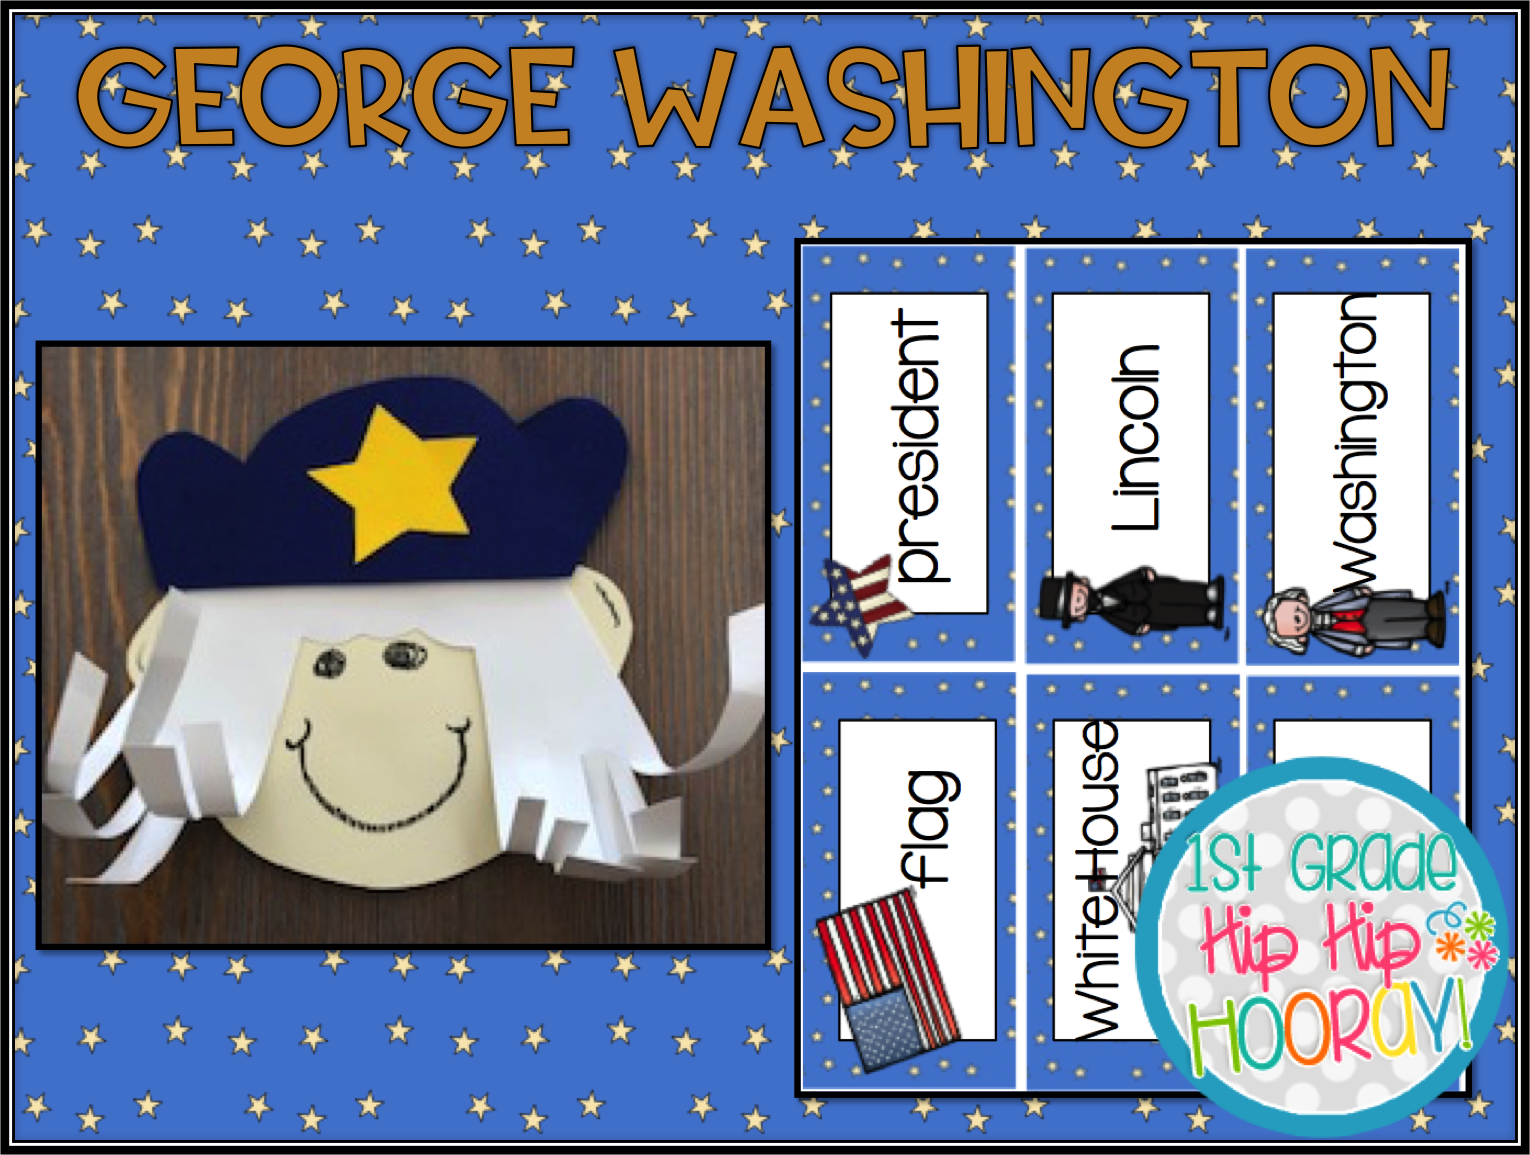 1st Grade Hip Hip Hooray George Washington Aft